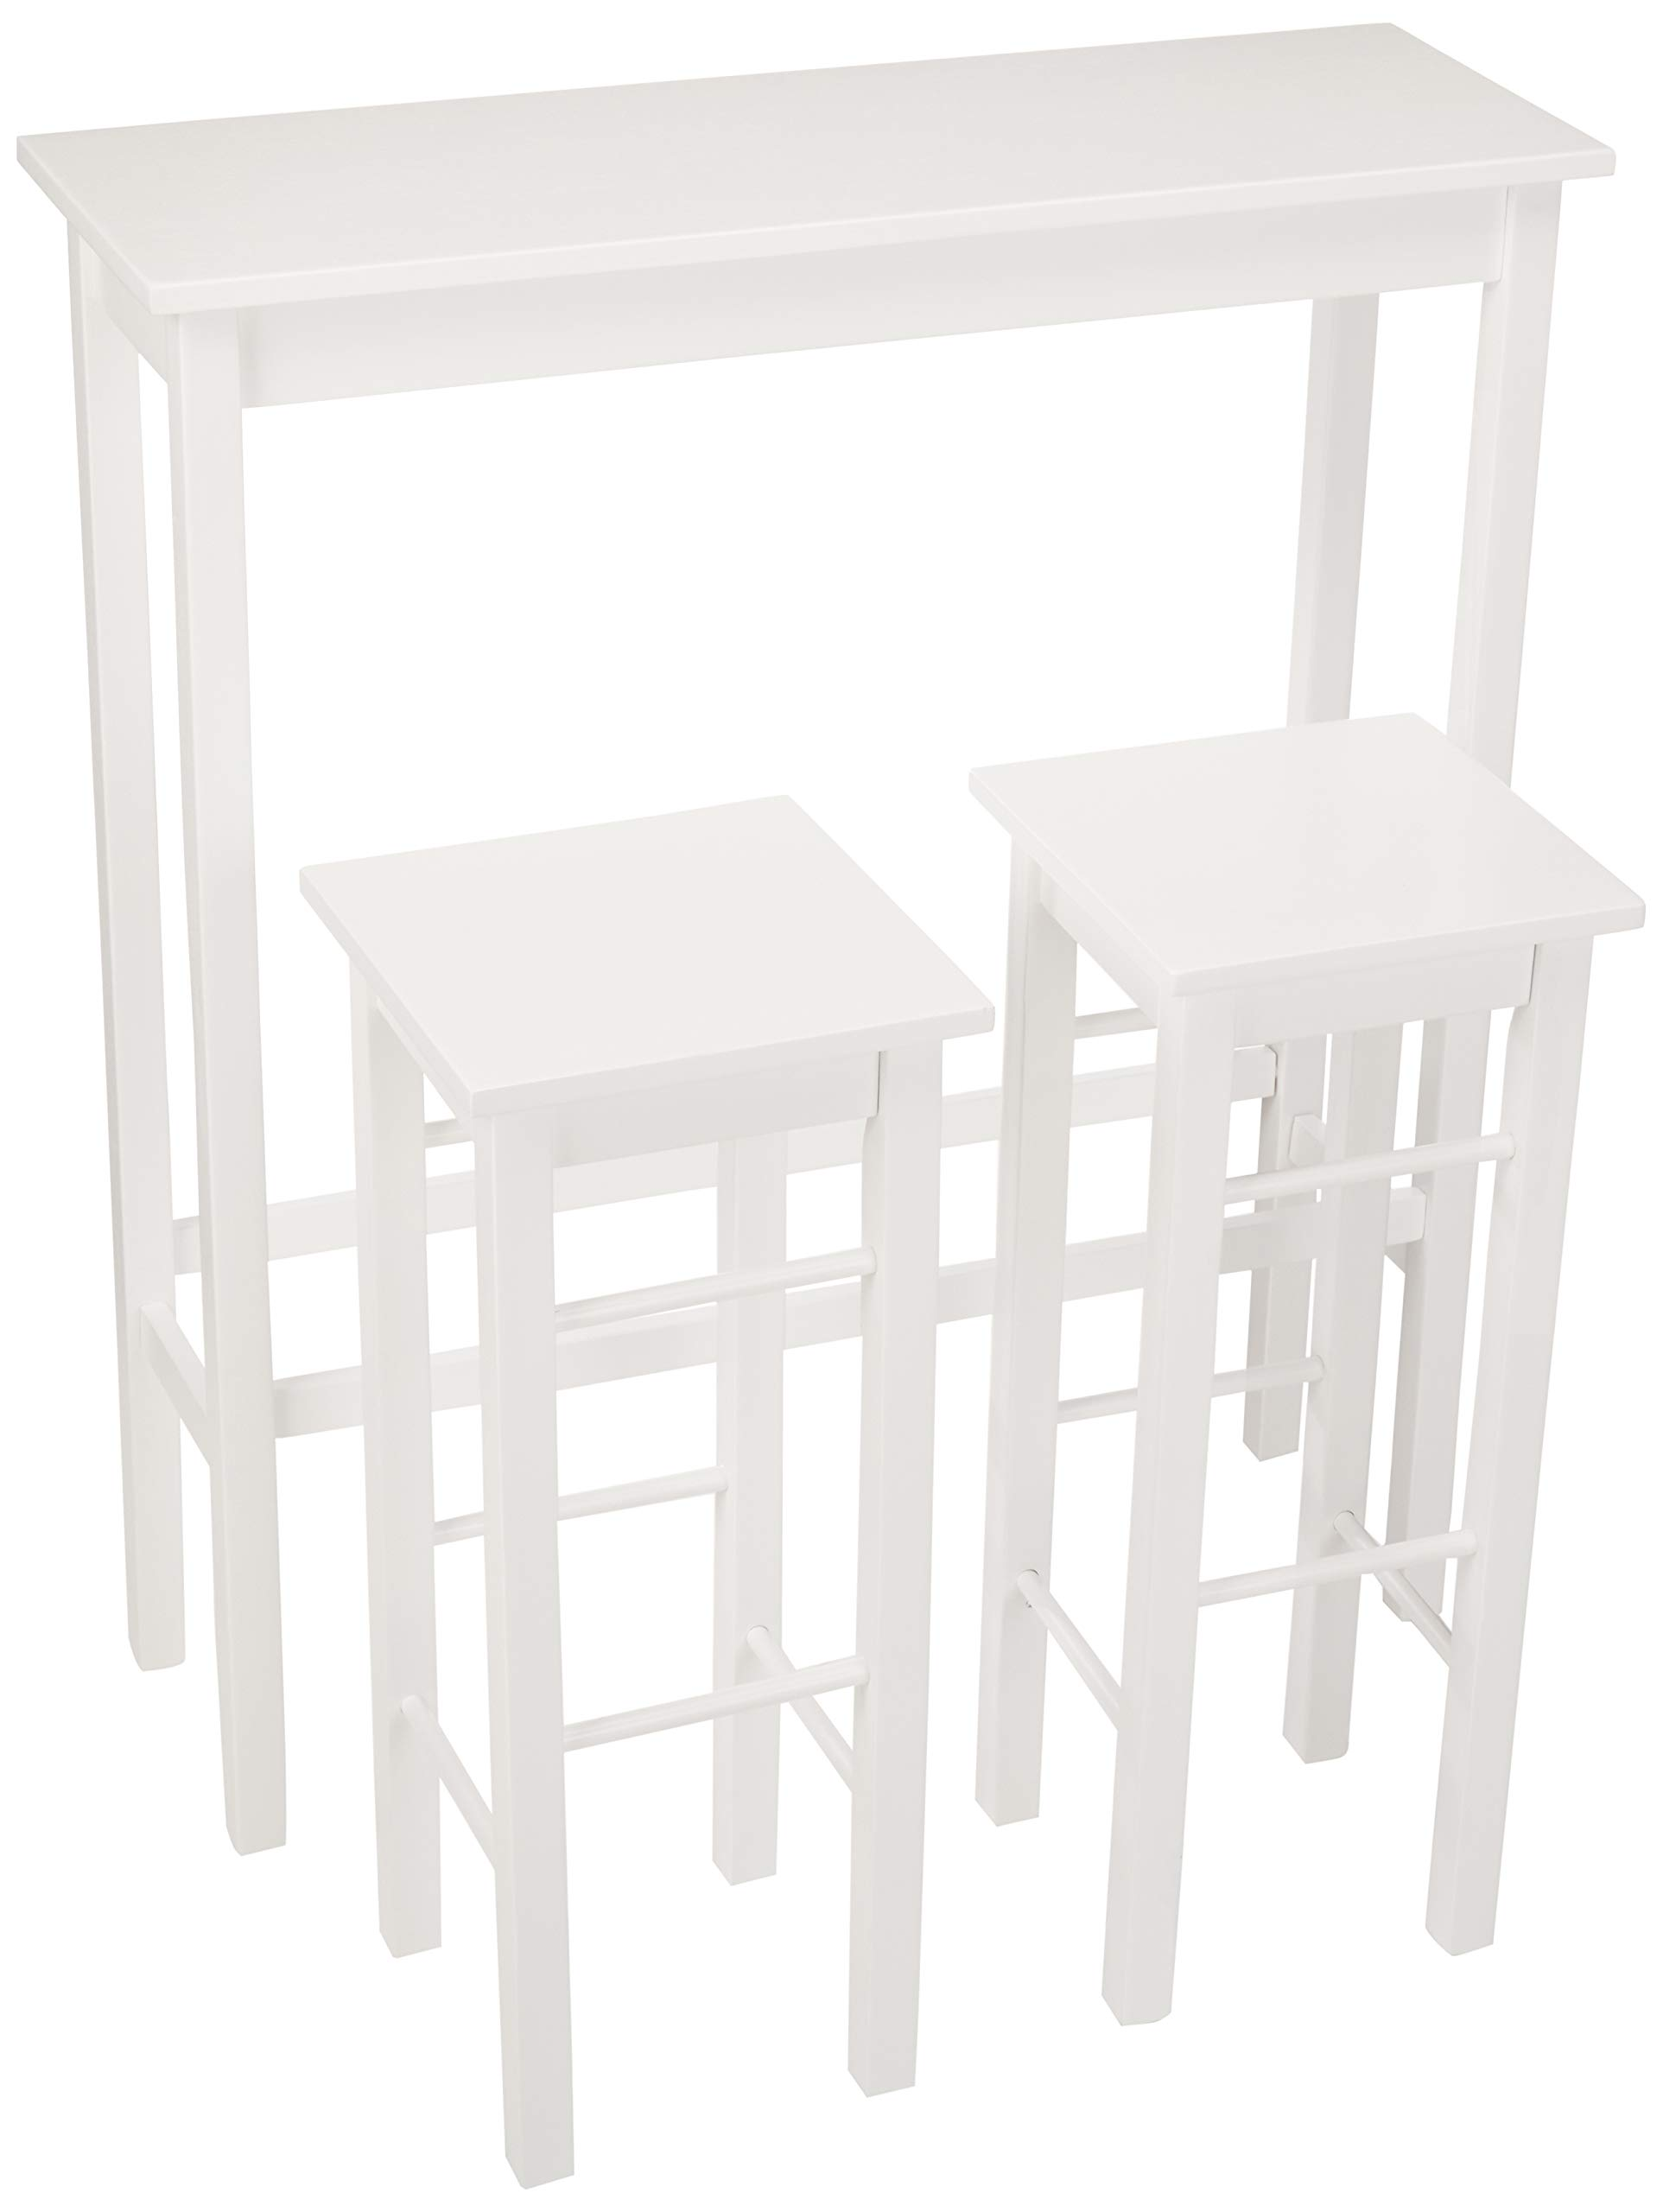 AmazonBasics Breakfast Bar Bistro Table - 3-Piece Set,  White by AmazonBasics